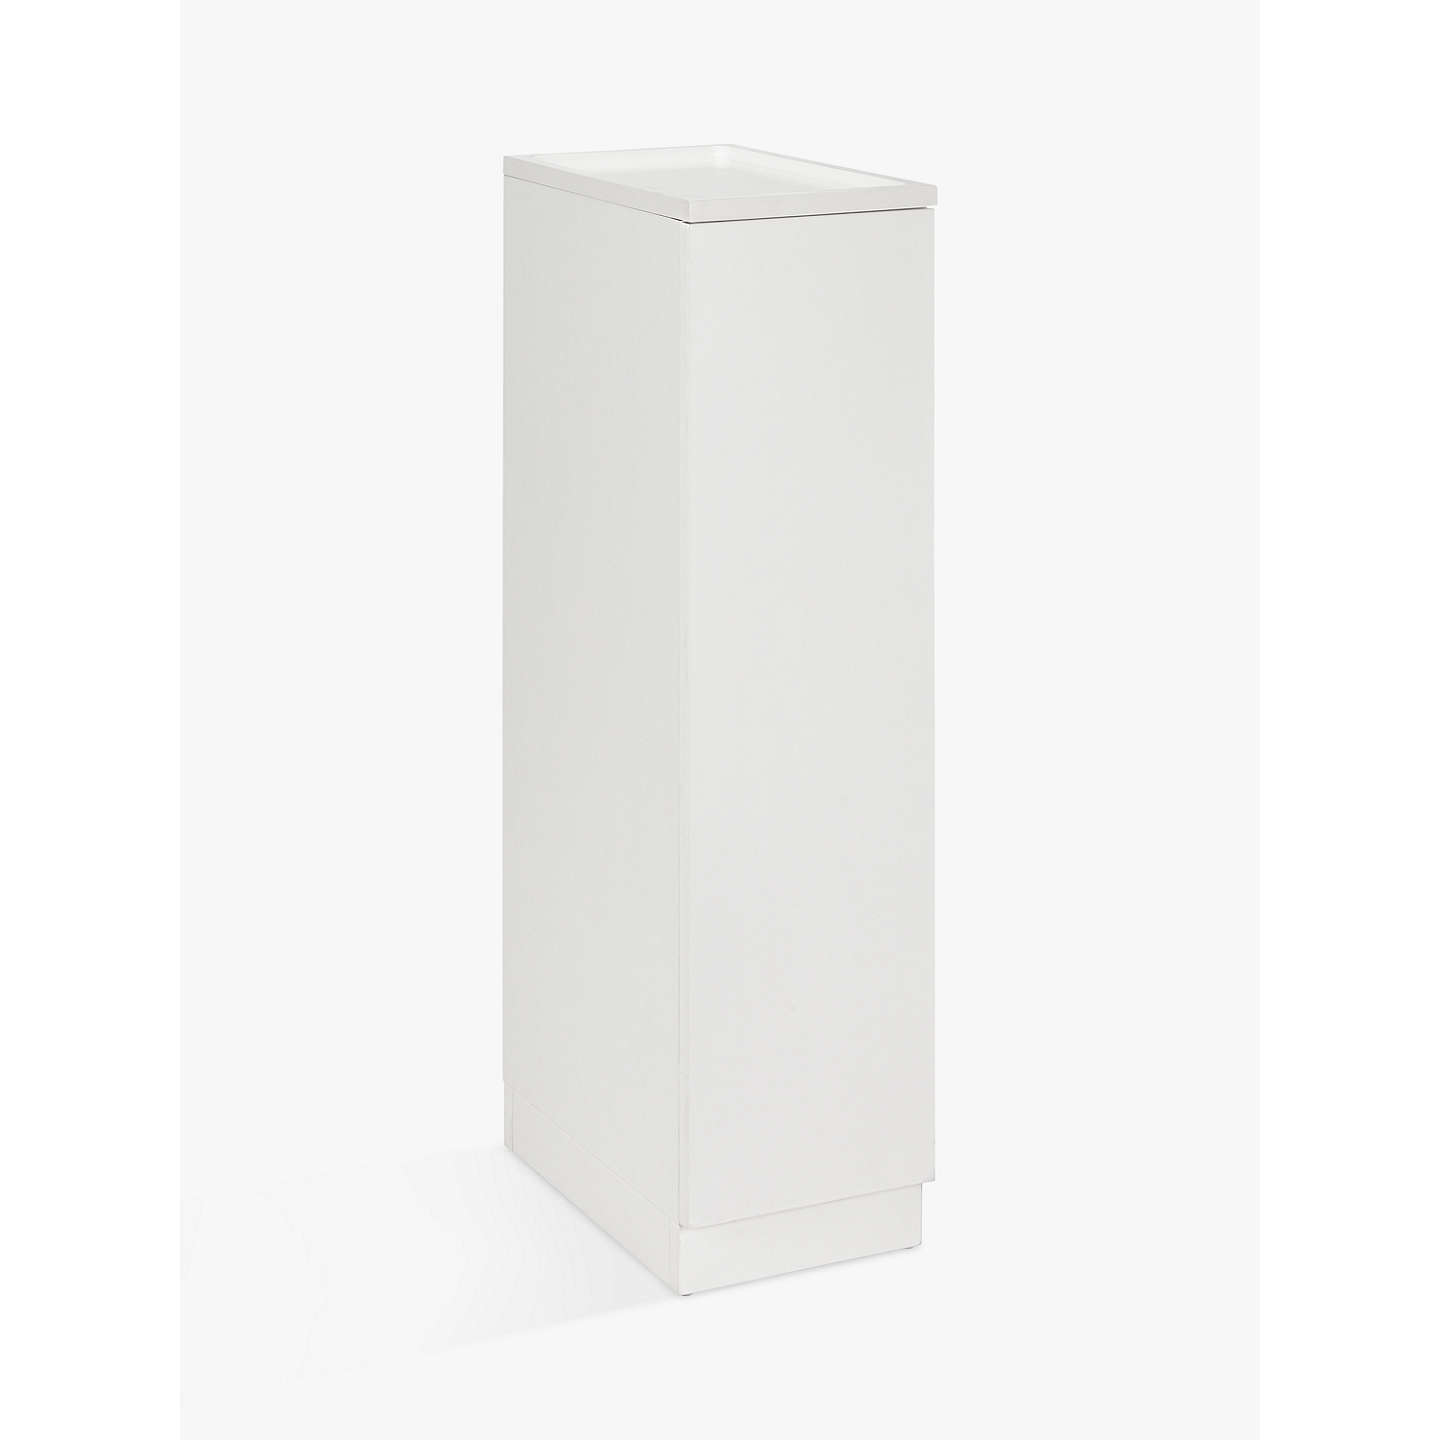 Free Standing Kitchen Cabinets John Lewis: House By John Lewis Equate Bathroom Cupboard, Tall At John